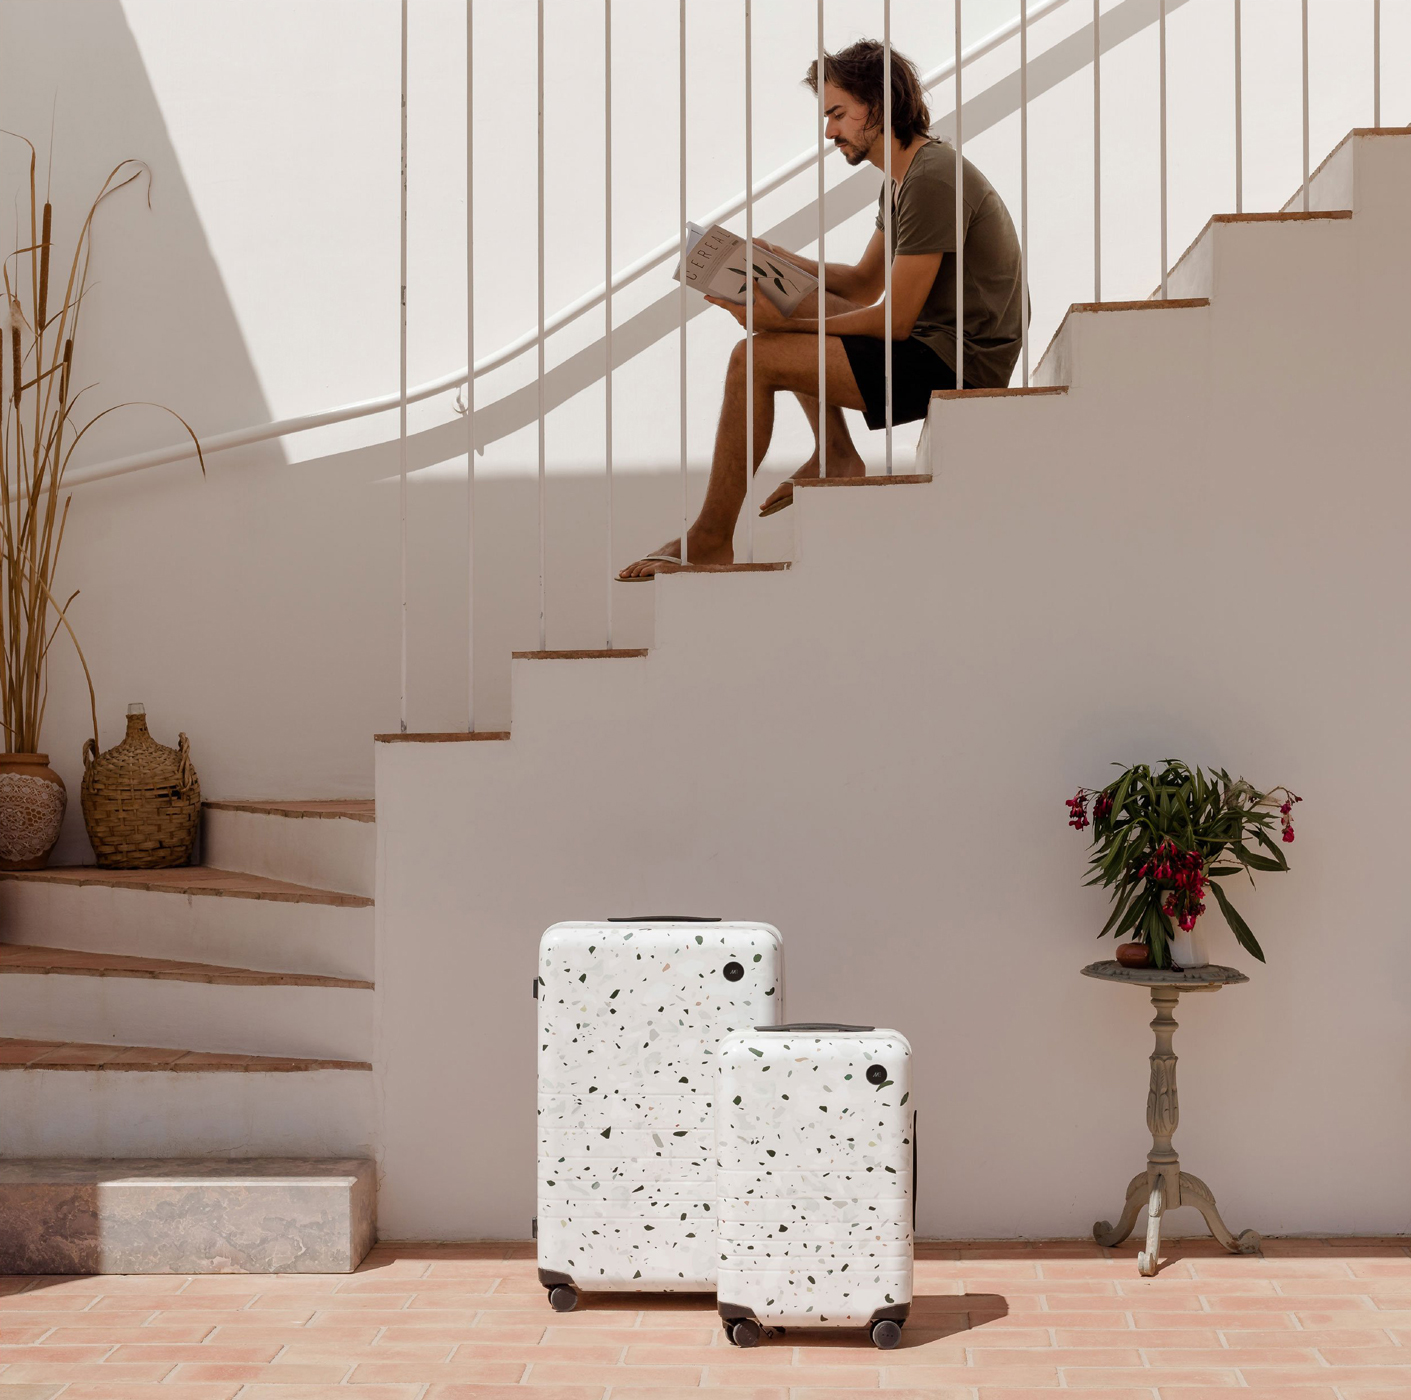 monos suitcases with speck pattern